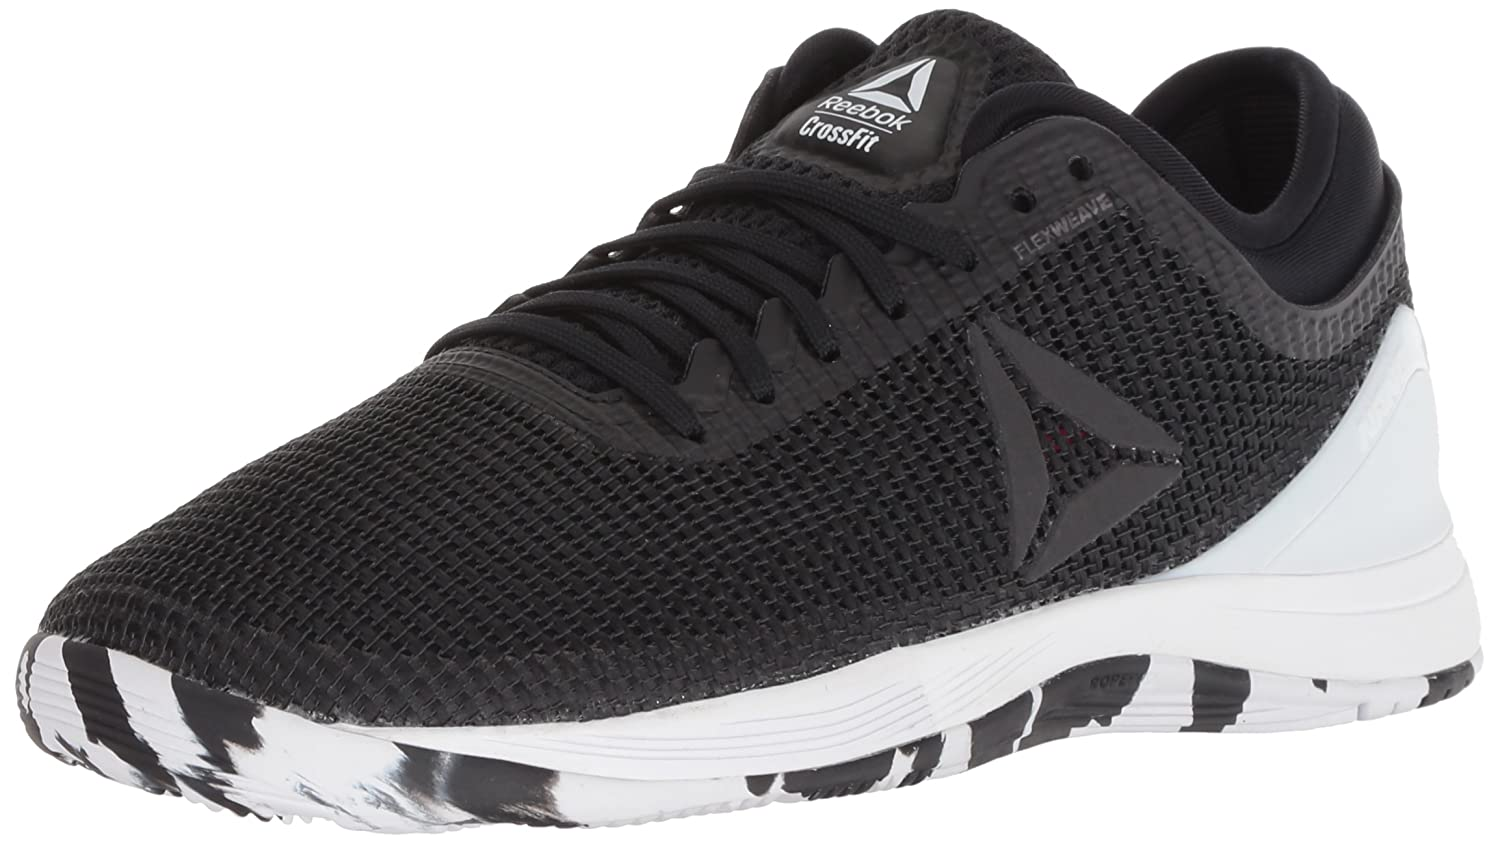 Reebok Women's Crossfit Nano 8.0 Flexweave Cross Trainer B078DF9XRP 9.5 B(M) US|Black/White/Twisted Pink